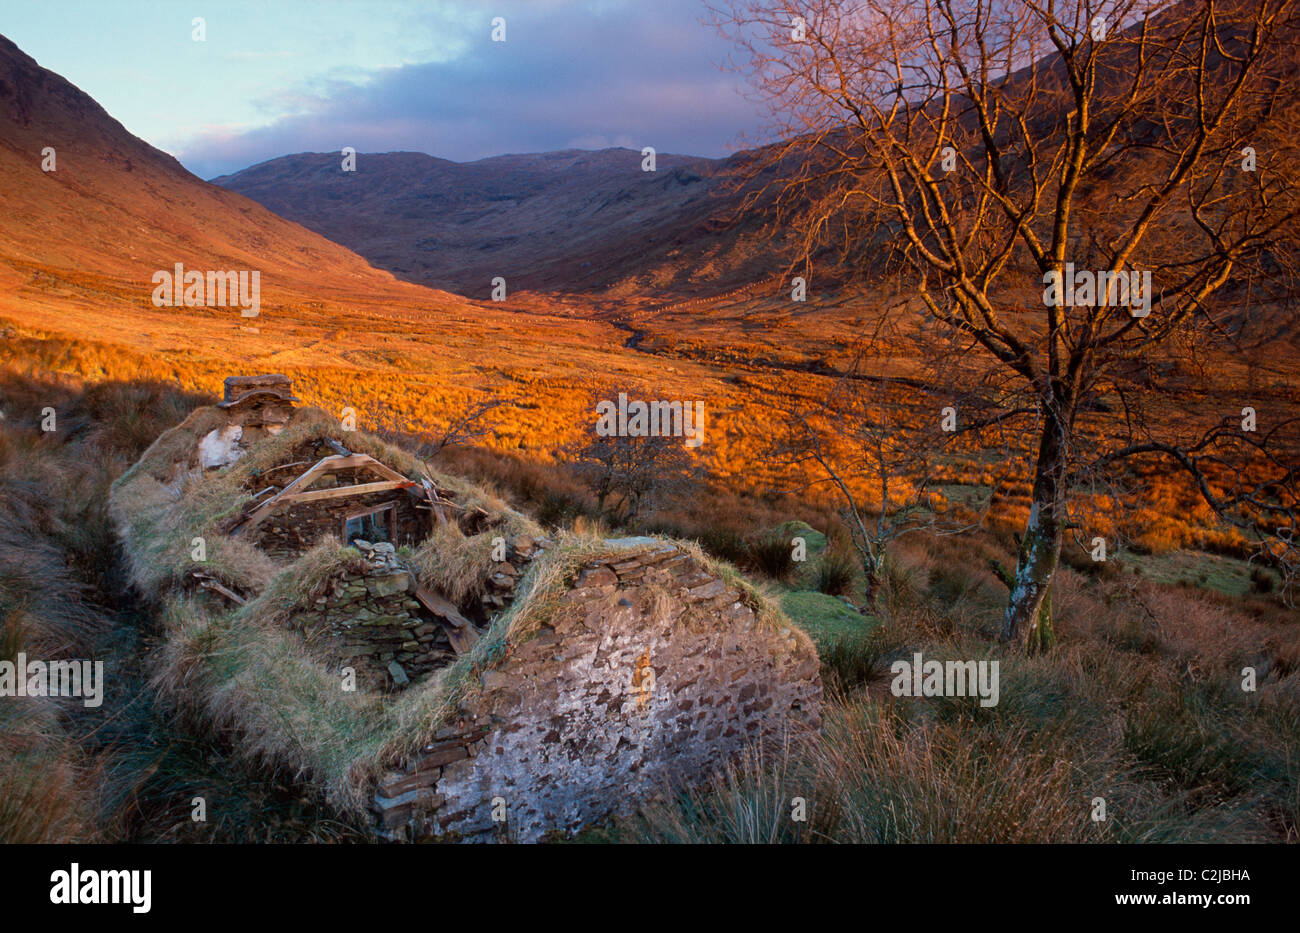 Deserted farm house in the Sruell Valley, Bluestack Mountains, County Donegal, Ireland. - Stock Image